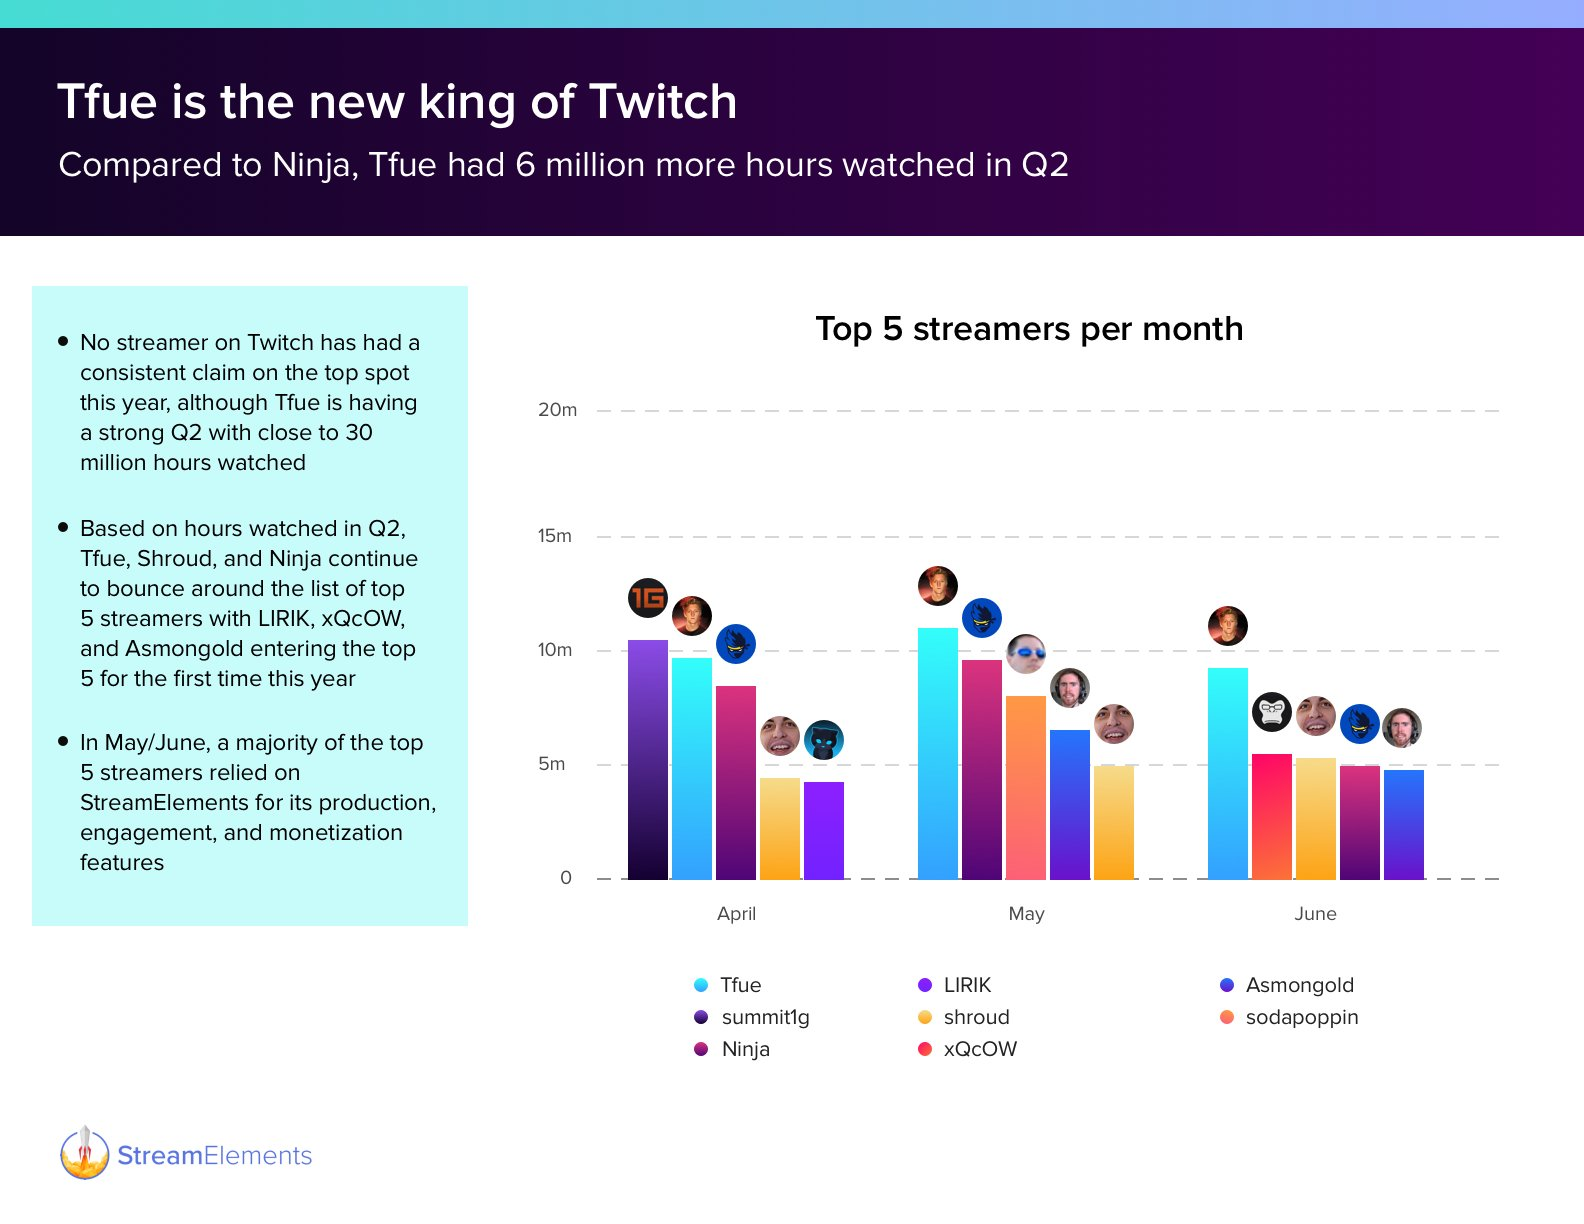 Tfue pulled ahead of Ninja and the rest of the pack on Twitch in May and June of 2019.